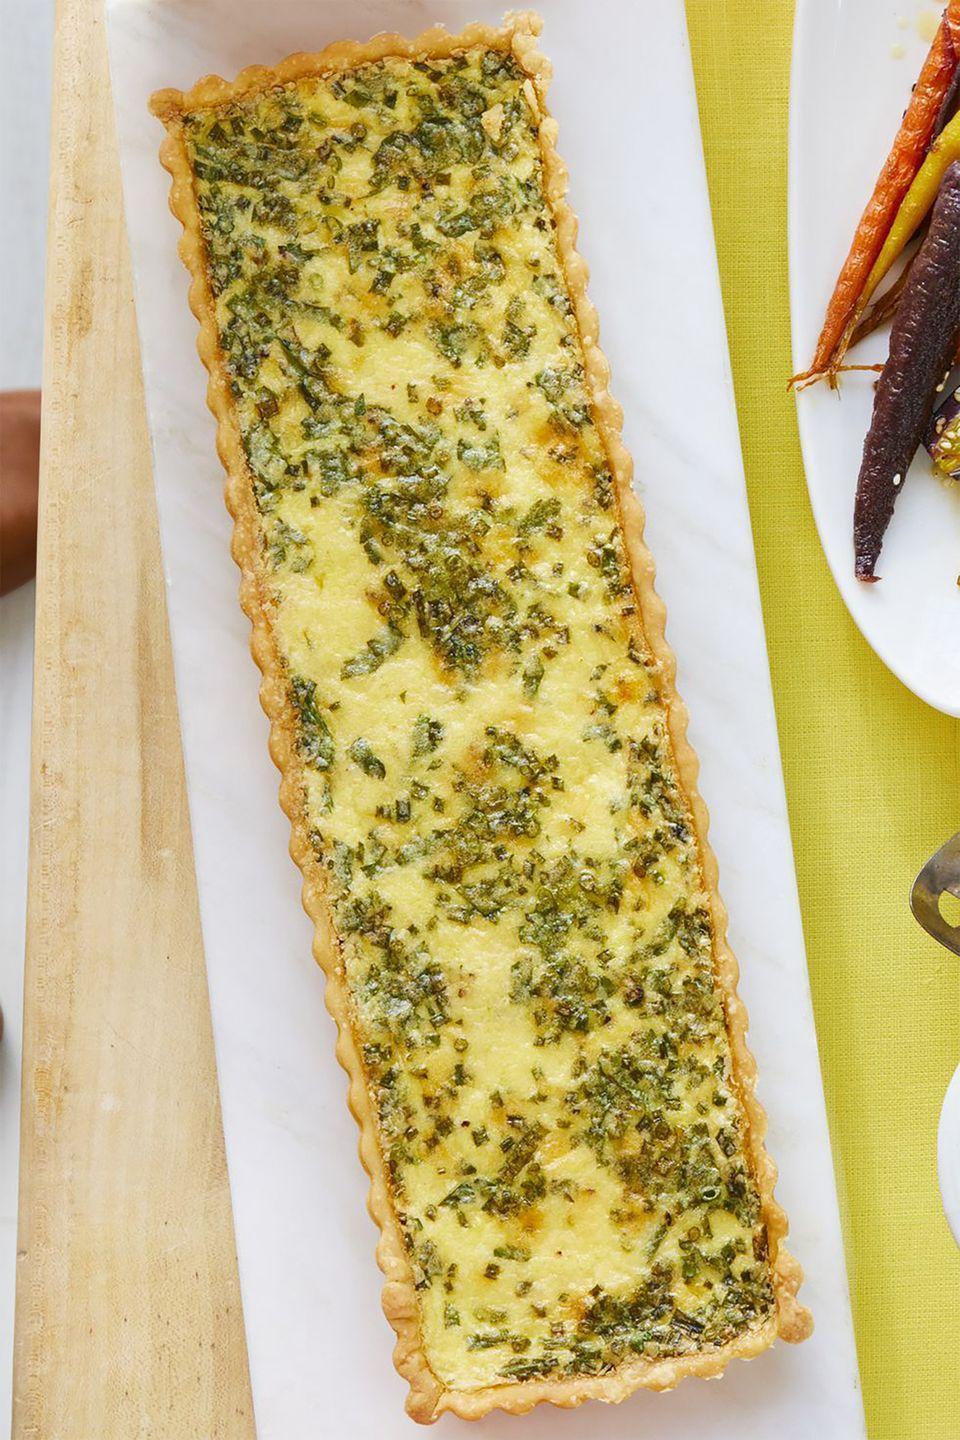 """<p>This deliciously cheesy quiche is sure to make Mom's morning. </p><p><strong><a href=""""https://www.womansday.com/food-recipes/food-drinks/a19122269/cheese-and-herb-quiche-recipe/"""" rel=""""nofollow noopener"""" target=""""_blank"""" data-ylk=""""slk:Get the Cheese-and-Herb Quiche recipe."""" class=""""link rapid-noclick-resp""""><em>Get the Cheese-and-Herb Quiche recipe.</em></a> </strong></p>"""